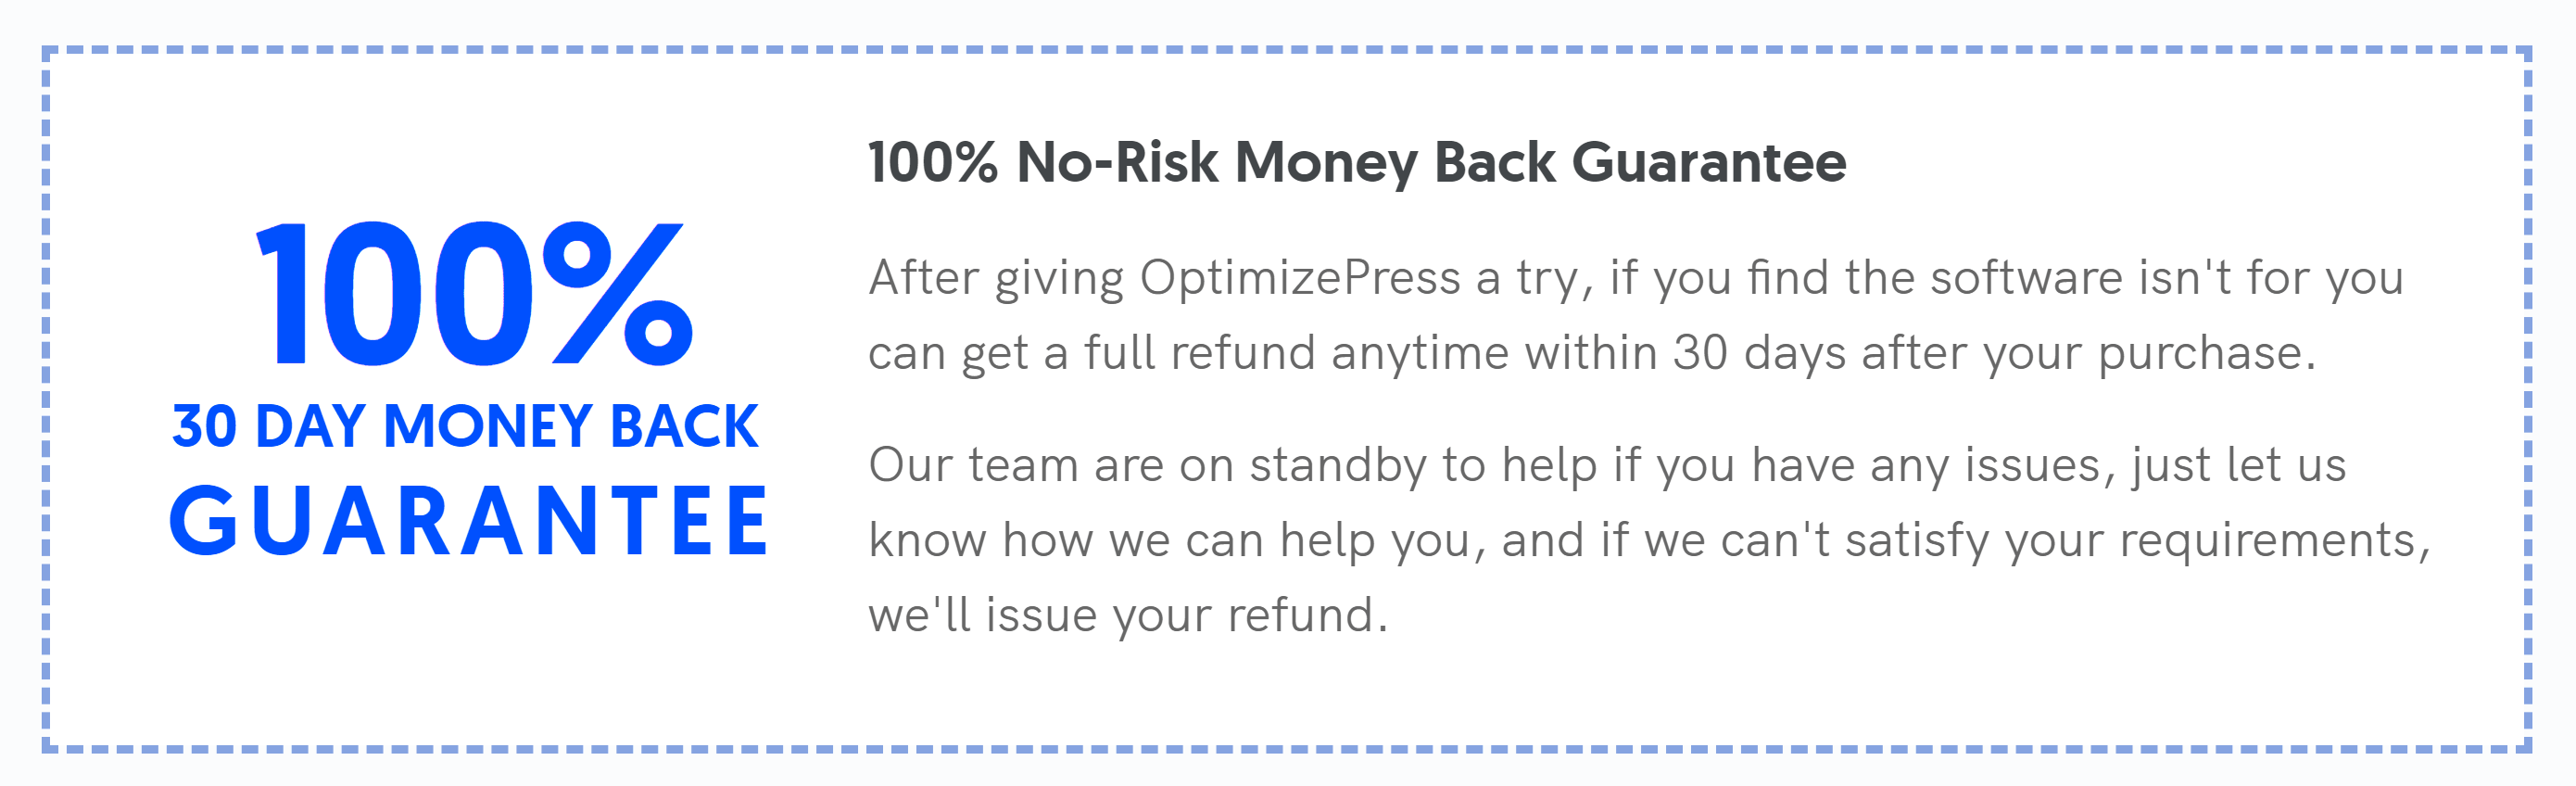 OptimizePress Money Back Guarantee